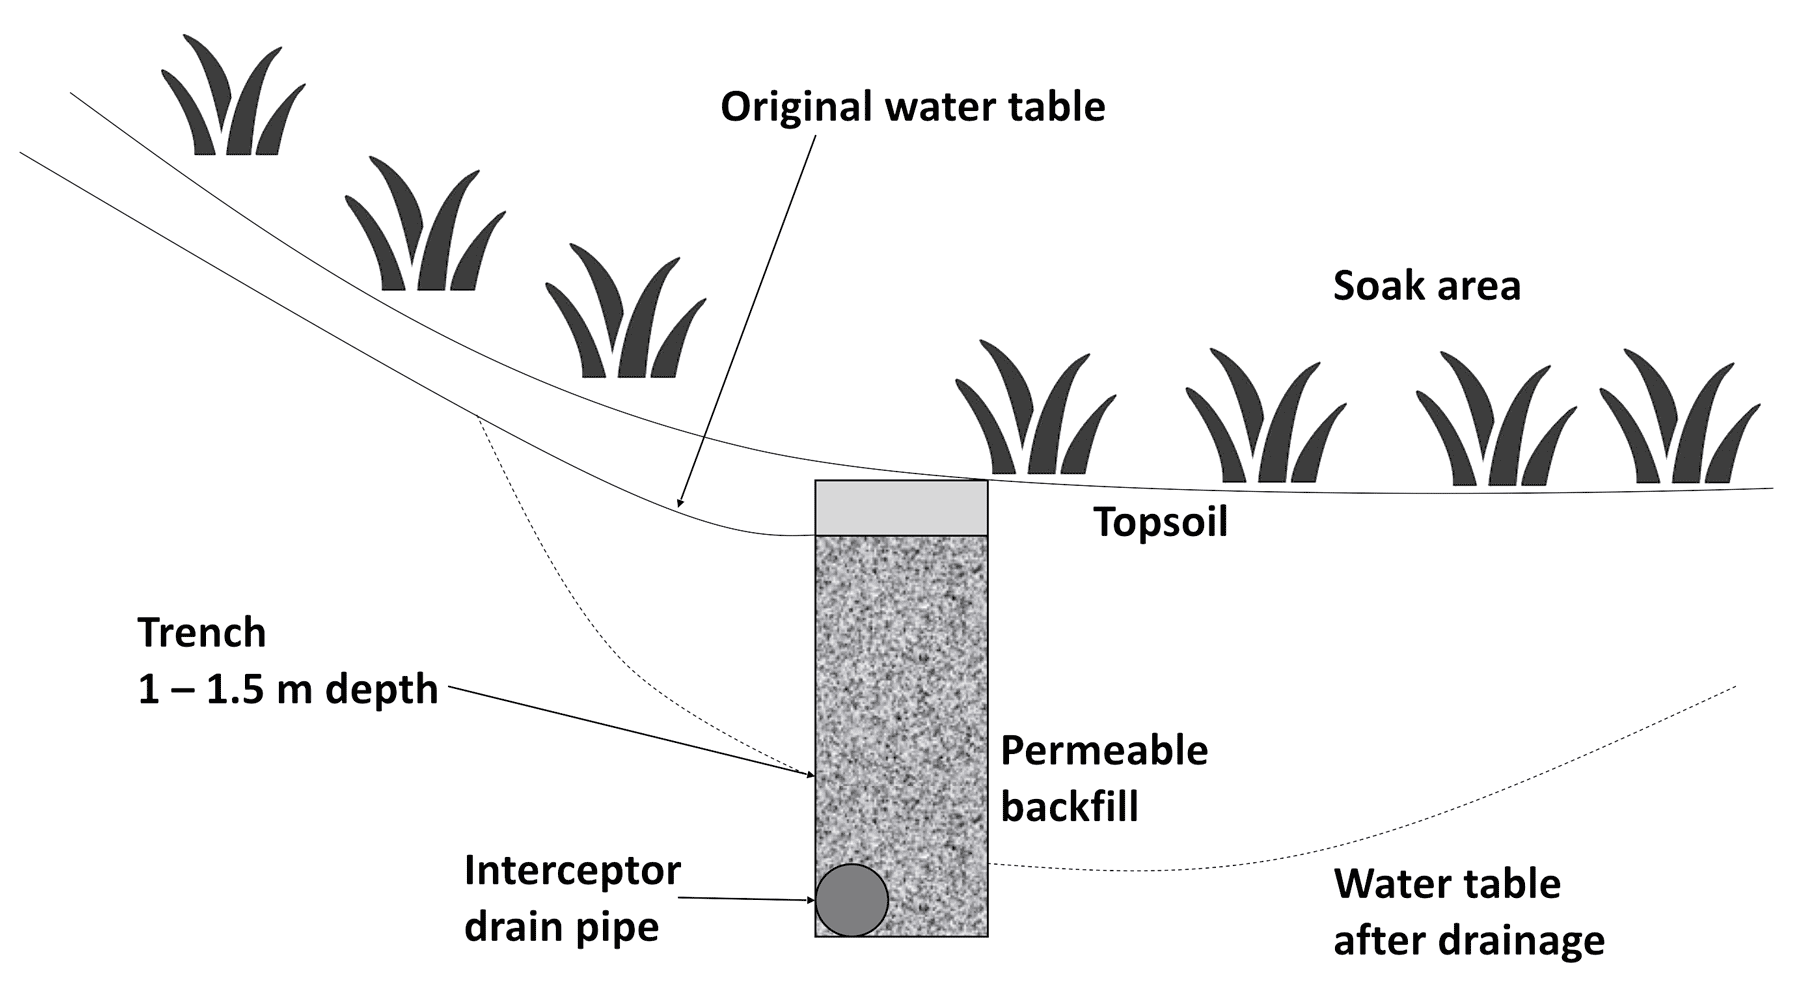 Cross section of an undulating area with a soak at the bottom. Mole drain trench with interceptor drain pipe shown. The mole drain trench should be between 1 and 1.5 m deep. Also shown is the original water table and the lowered water table after mole drain installation.